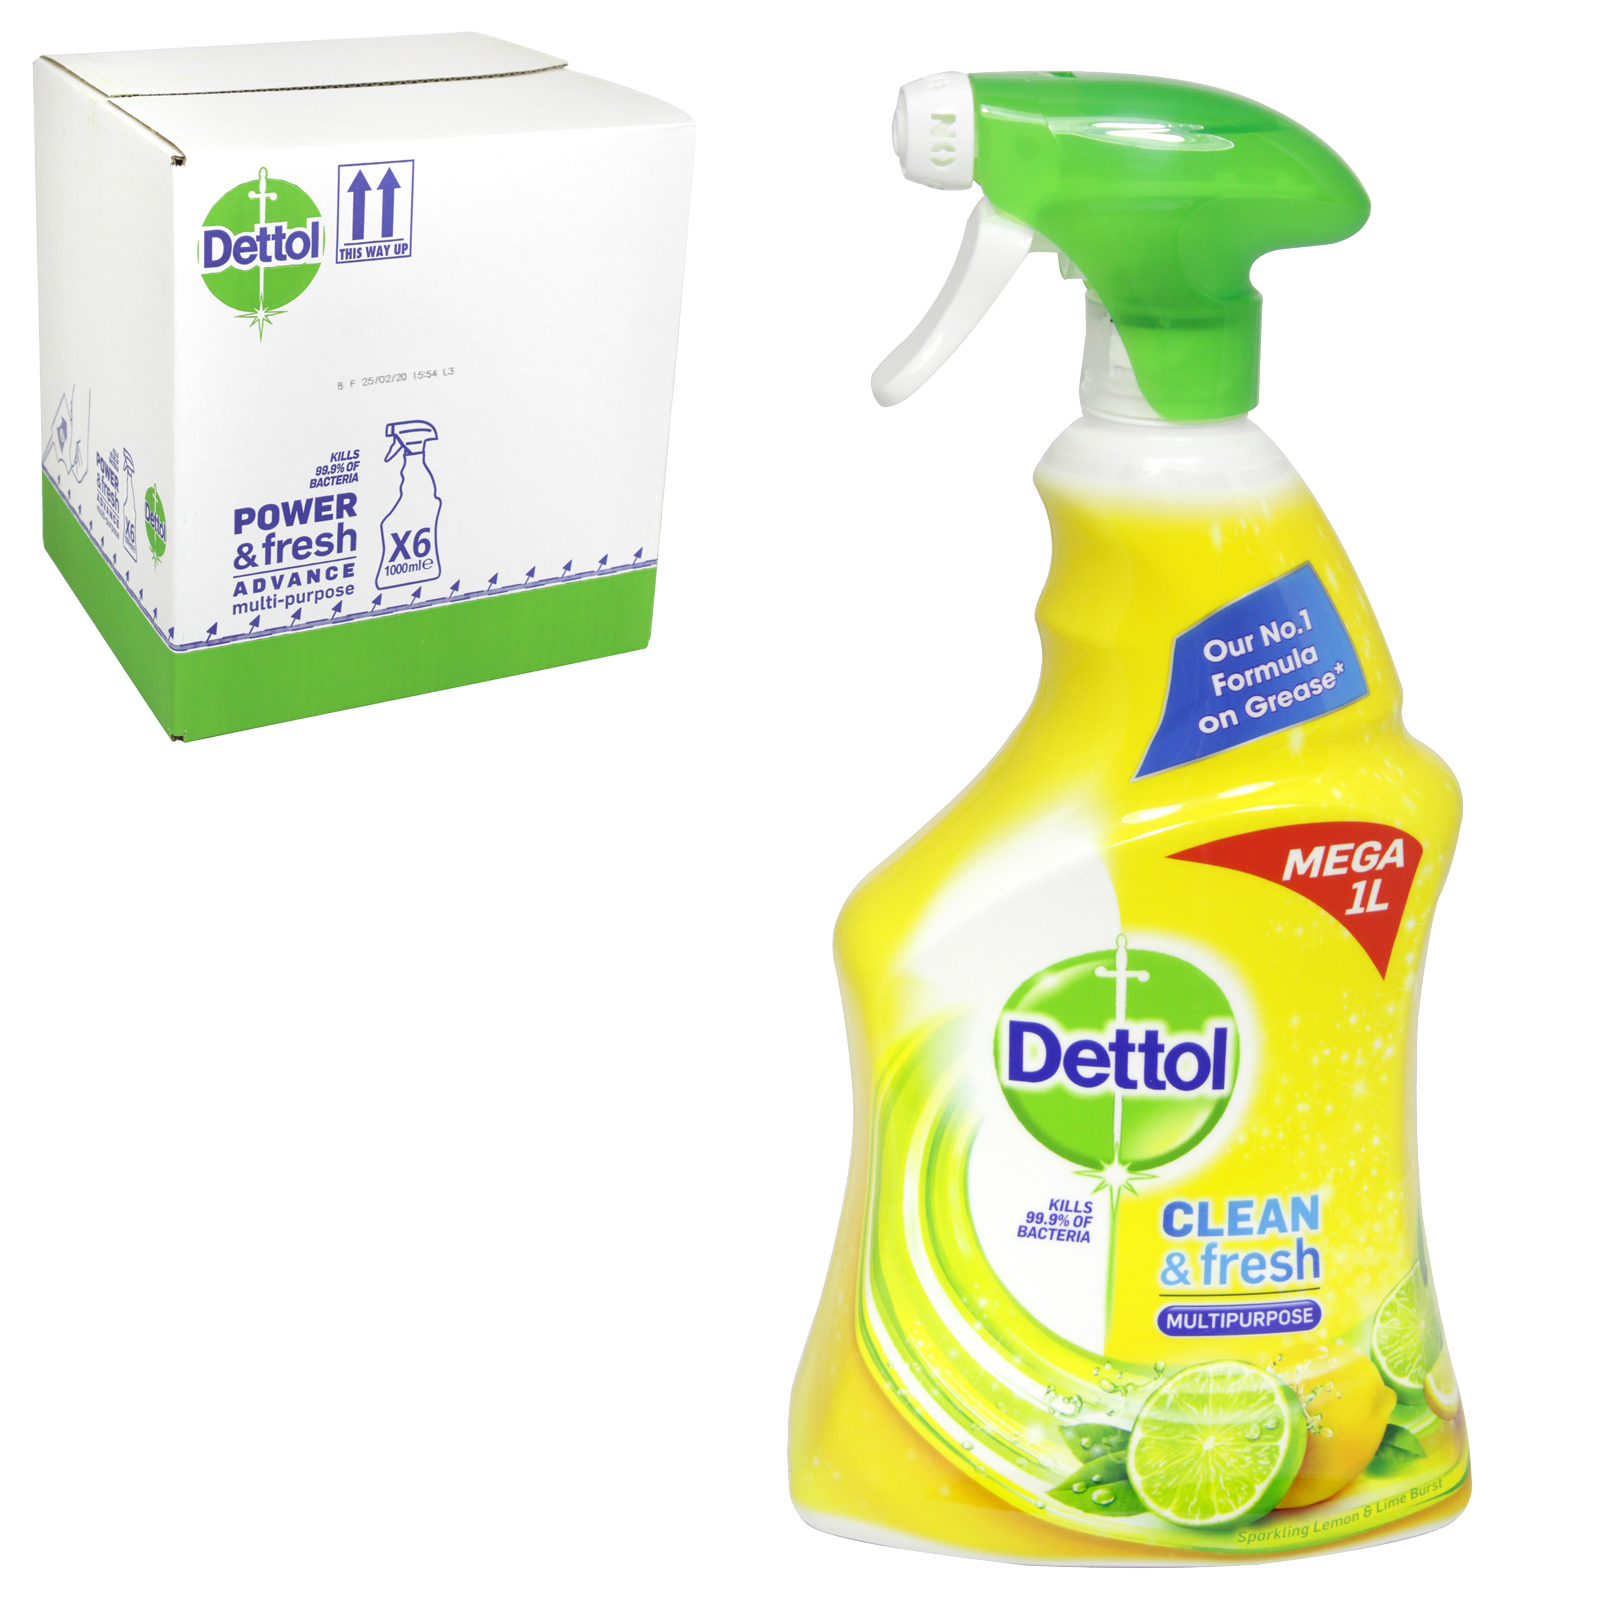 DETTOL POWER+FRESH ADVANCED 1L MULTI-P SPRAY CITRUS KILLS 99.9% BACTERIA X6